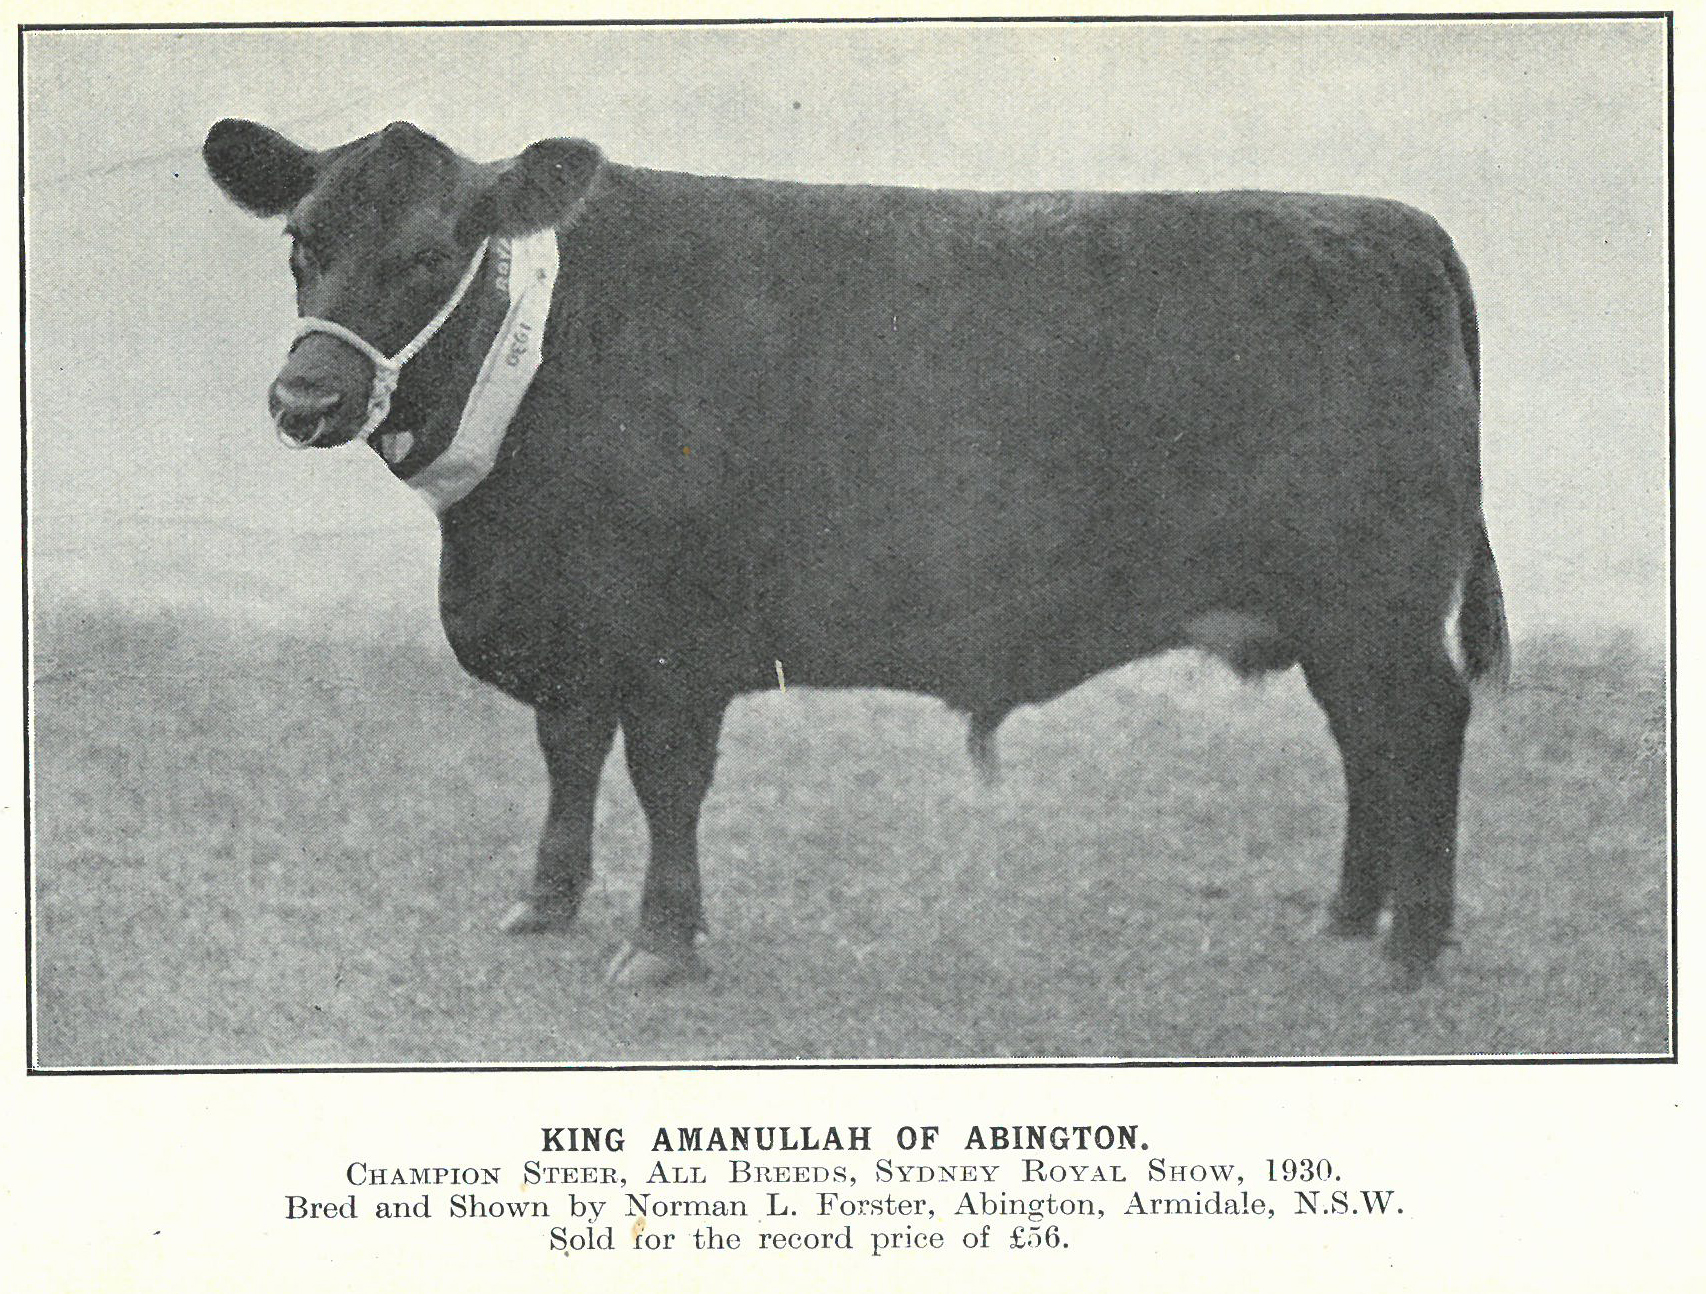 King Amanullah of Abington - 1930 All Breeds Steer, Sydney Royal Show